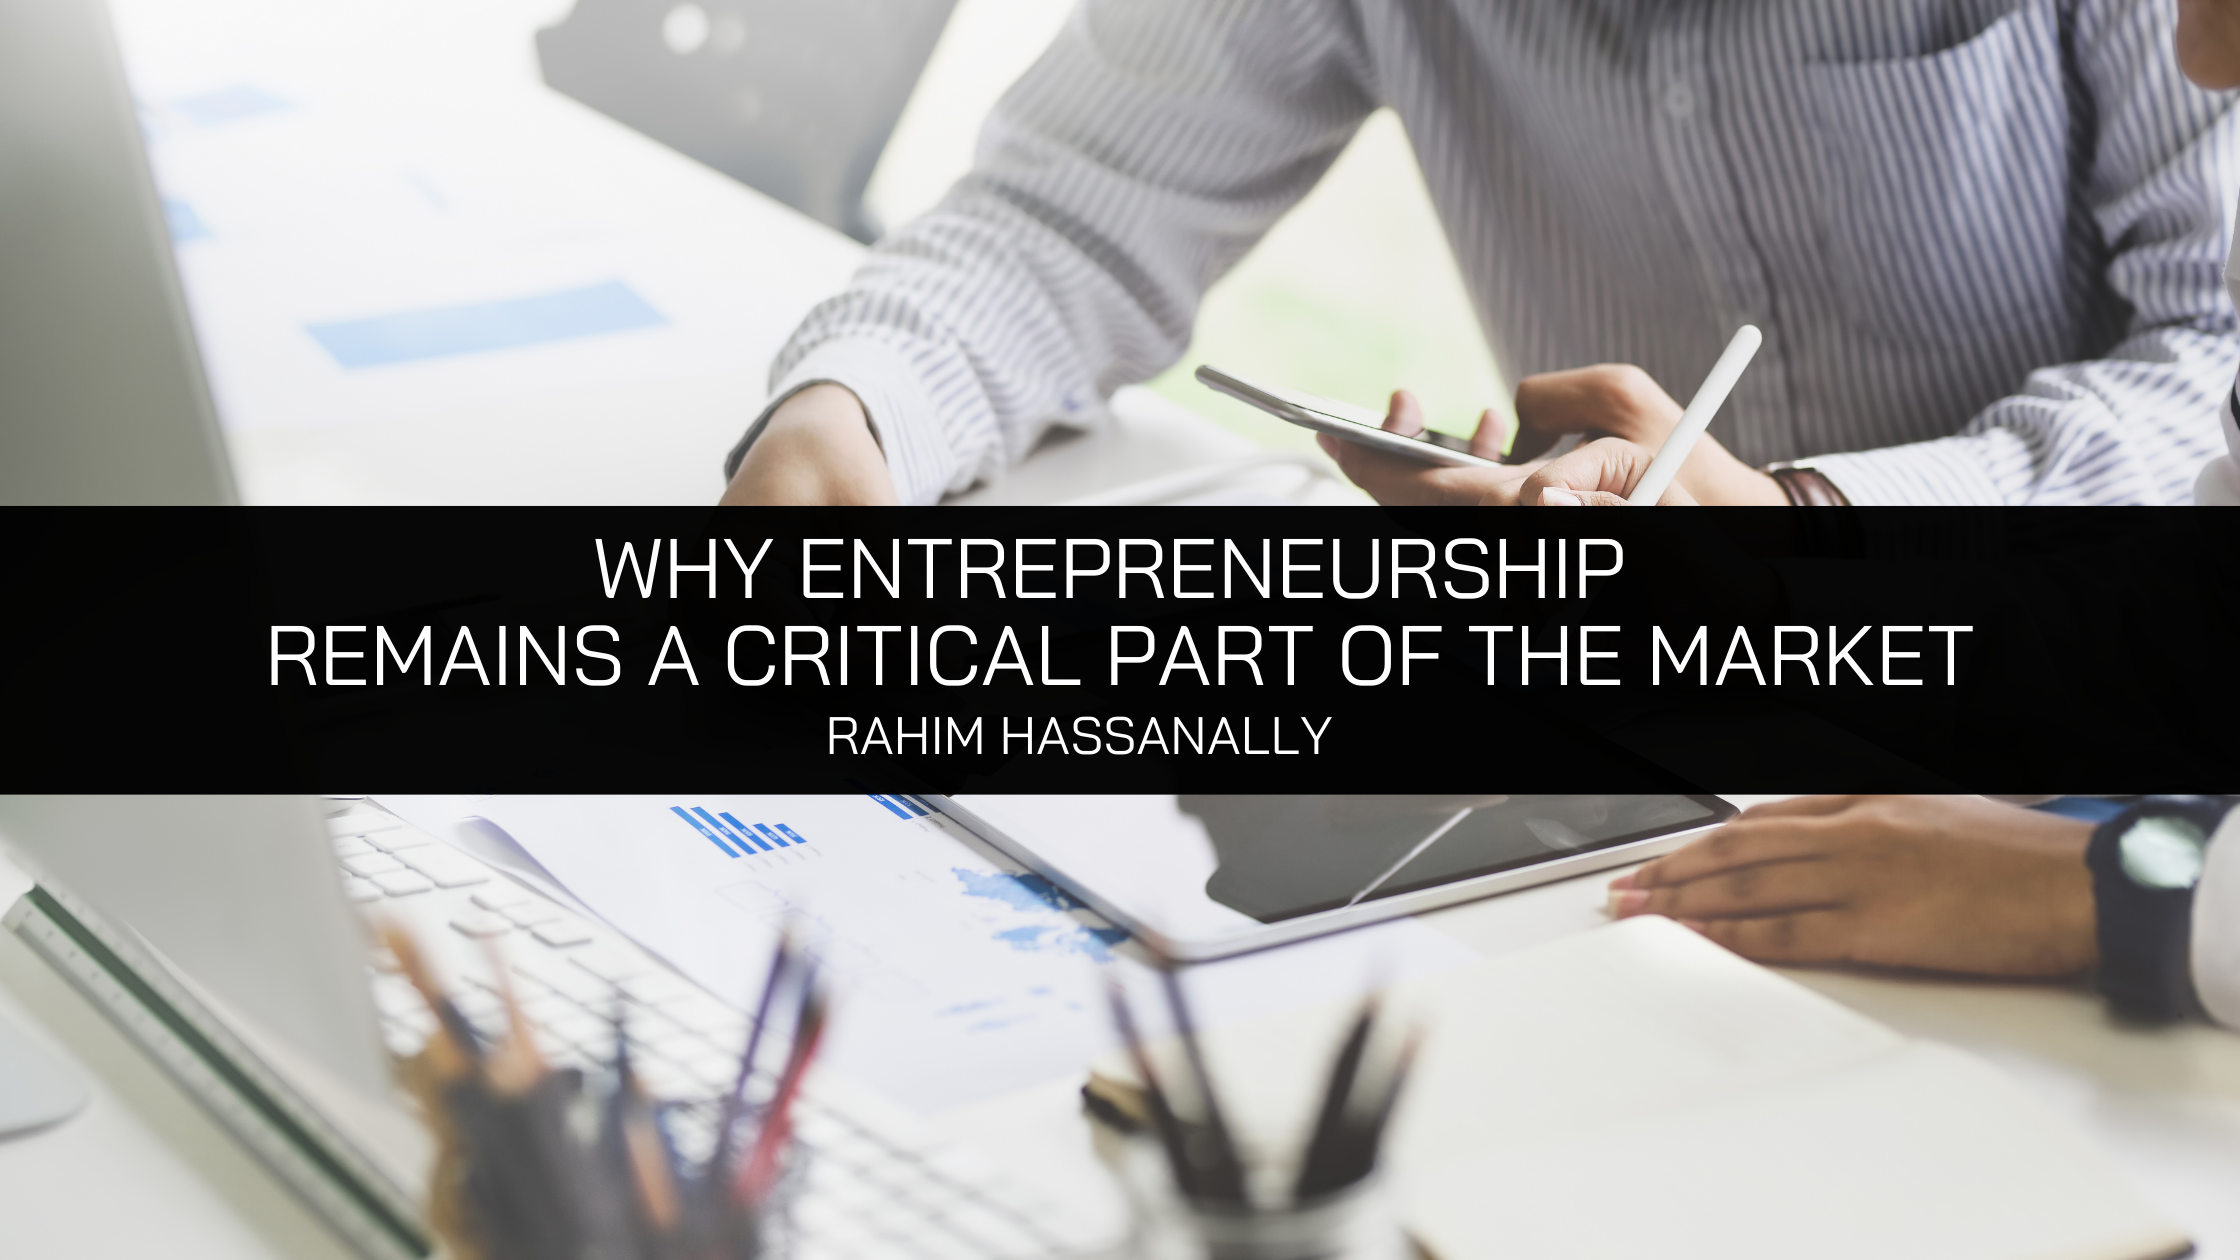 Rahim Hassanally: Why Entrepreneurship Remains a Critical Part of the Market